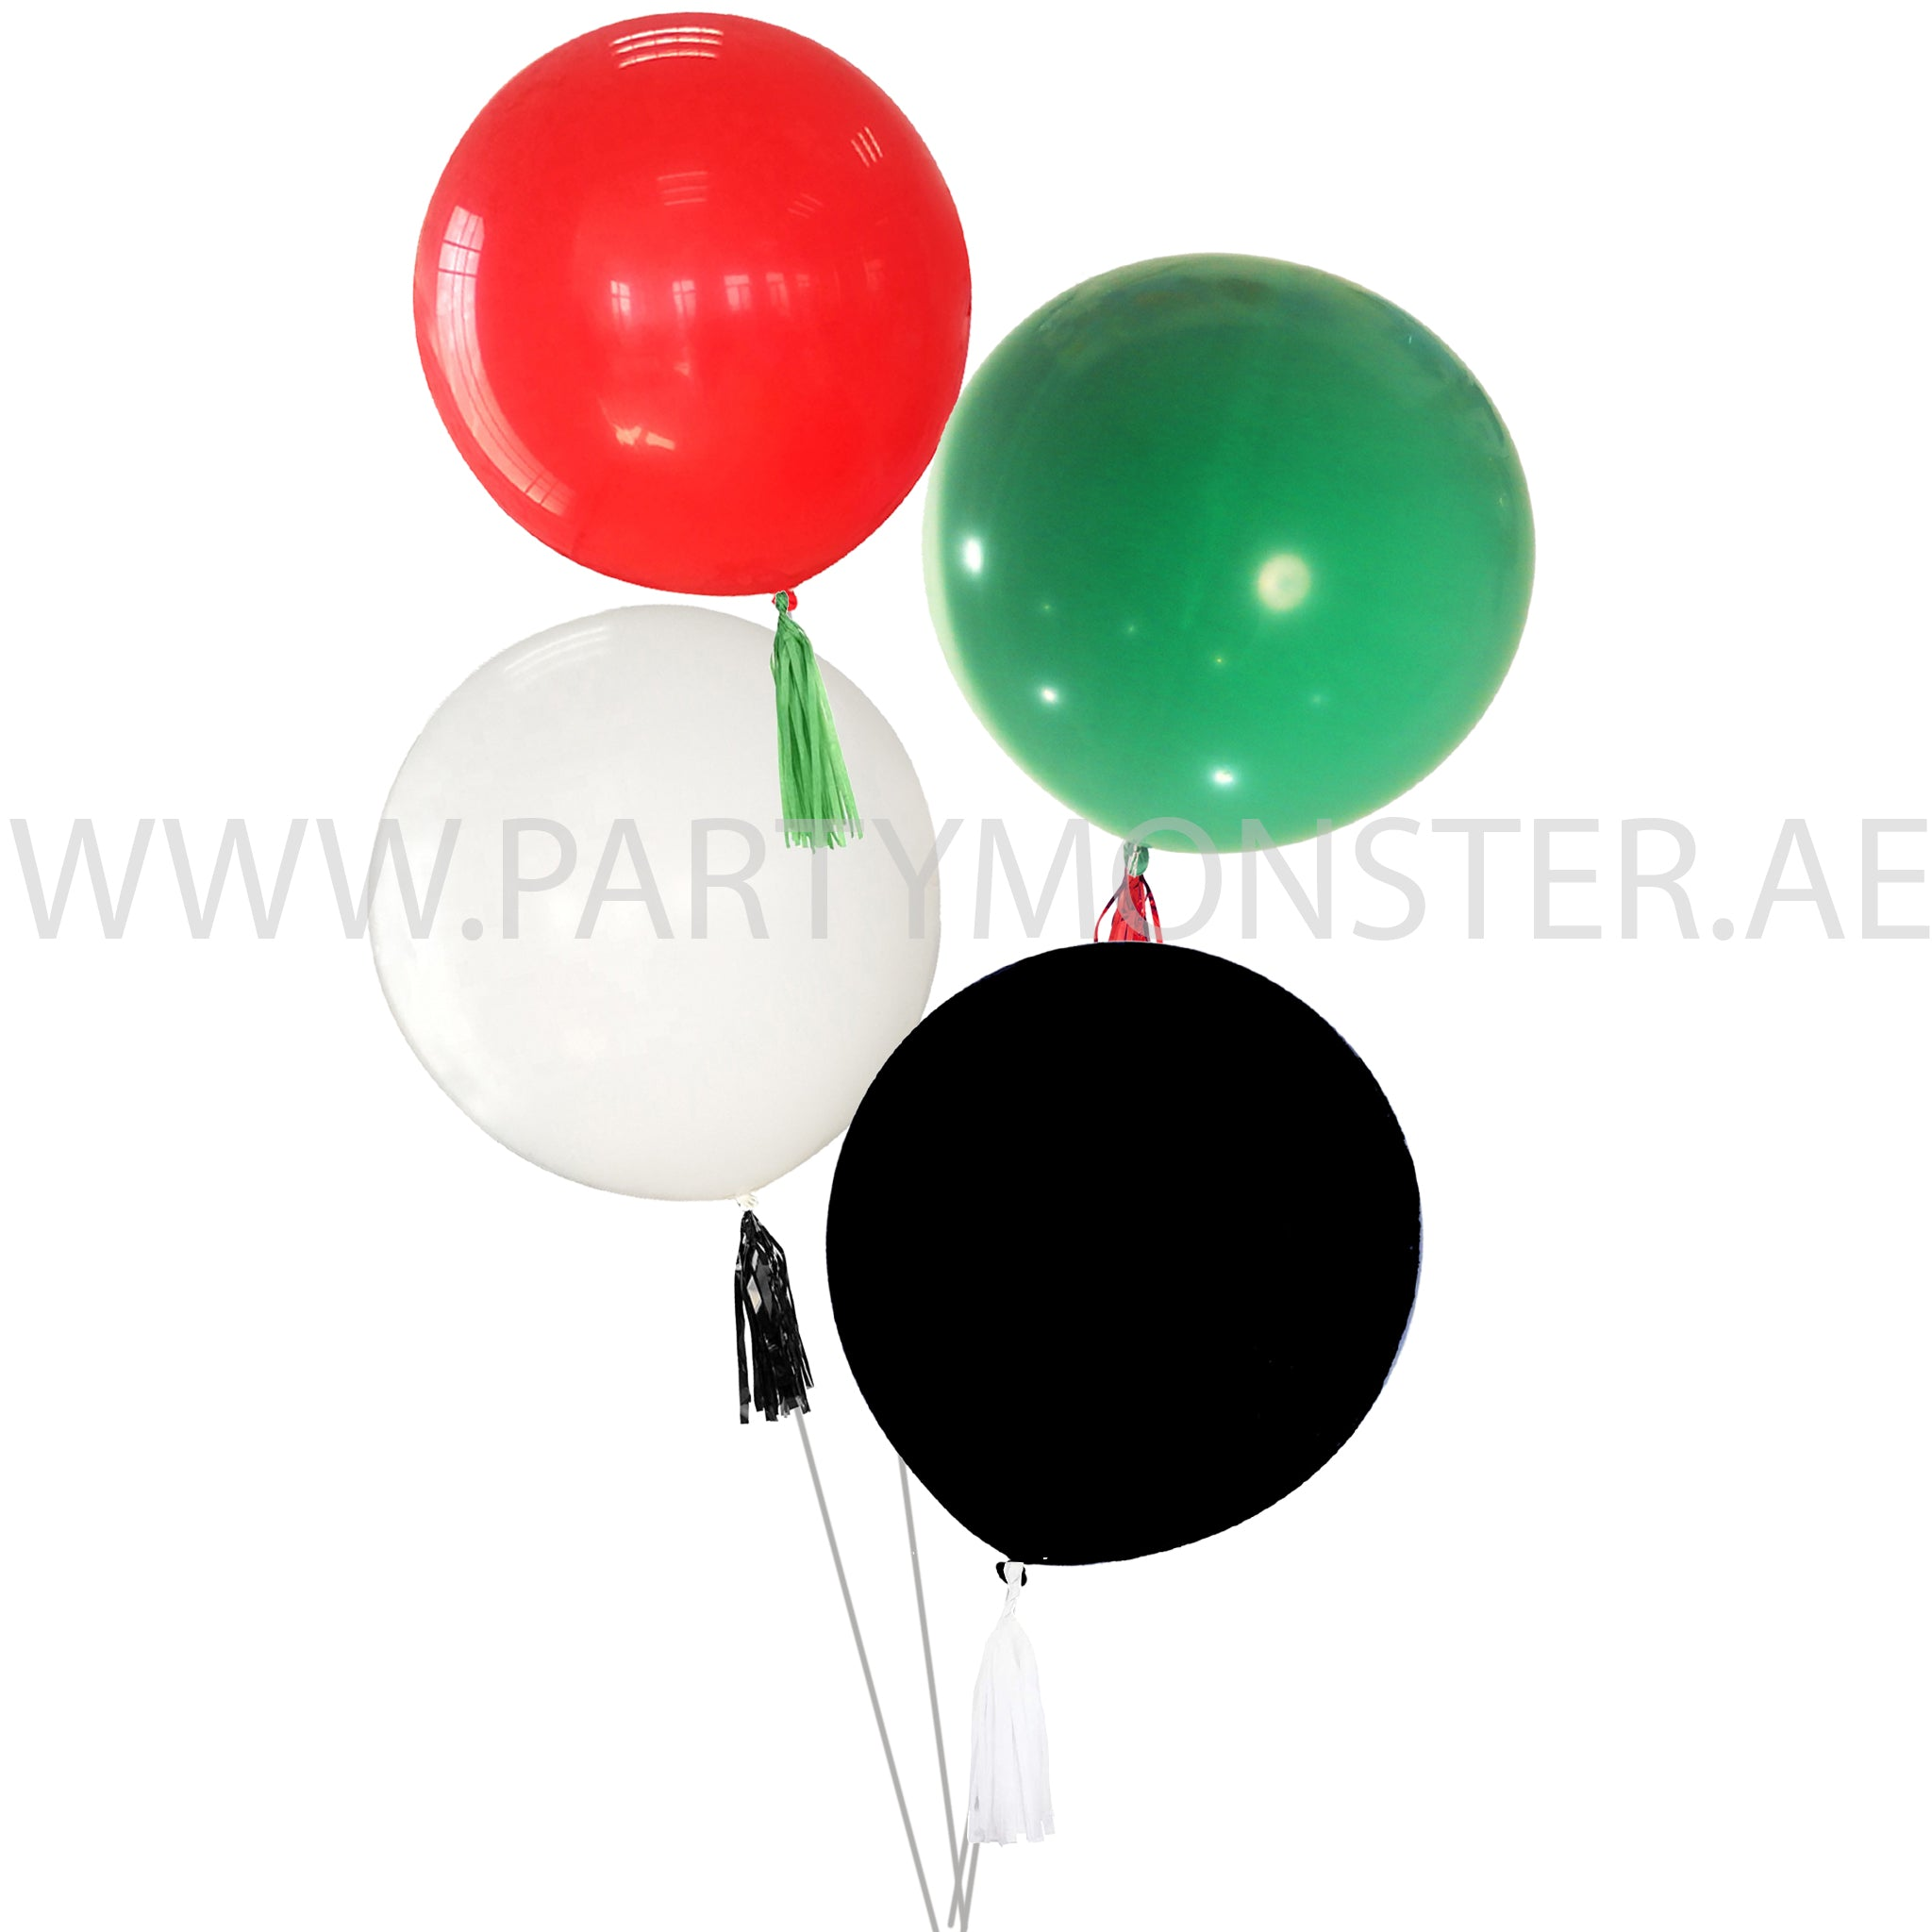 UAE National Day balloons for sale online in Dubai